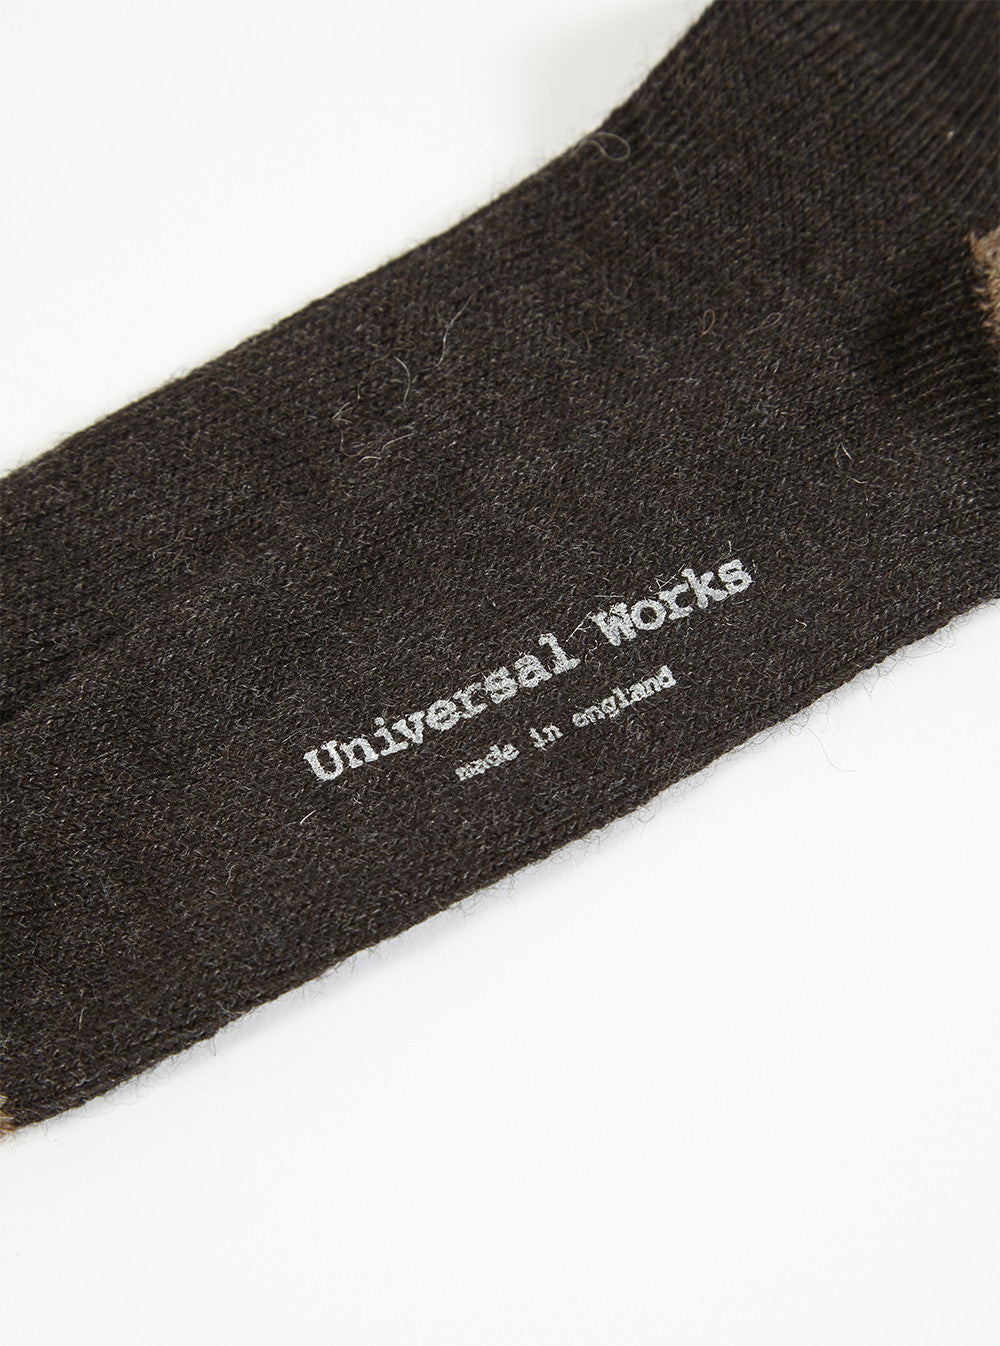 Universal Works Alpaca Sock in Charcoal Alpaca Wool